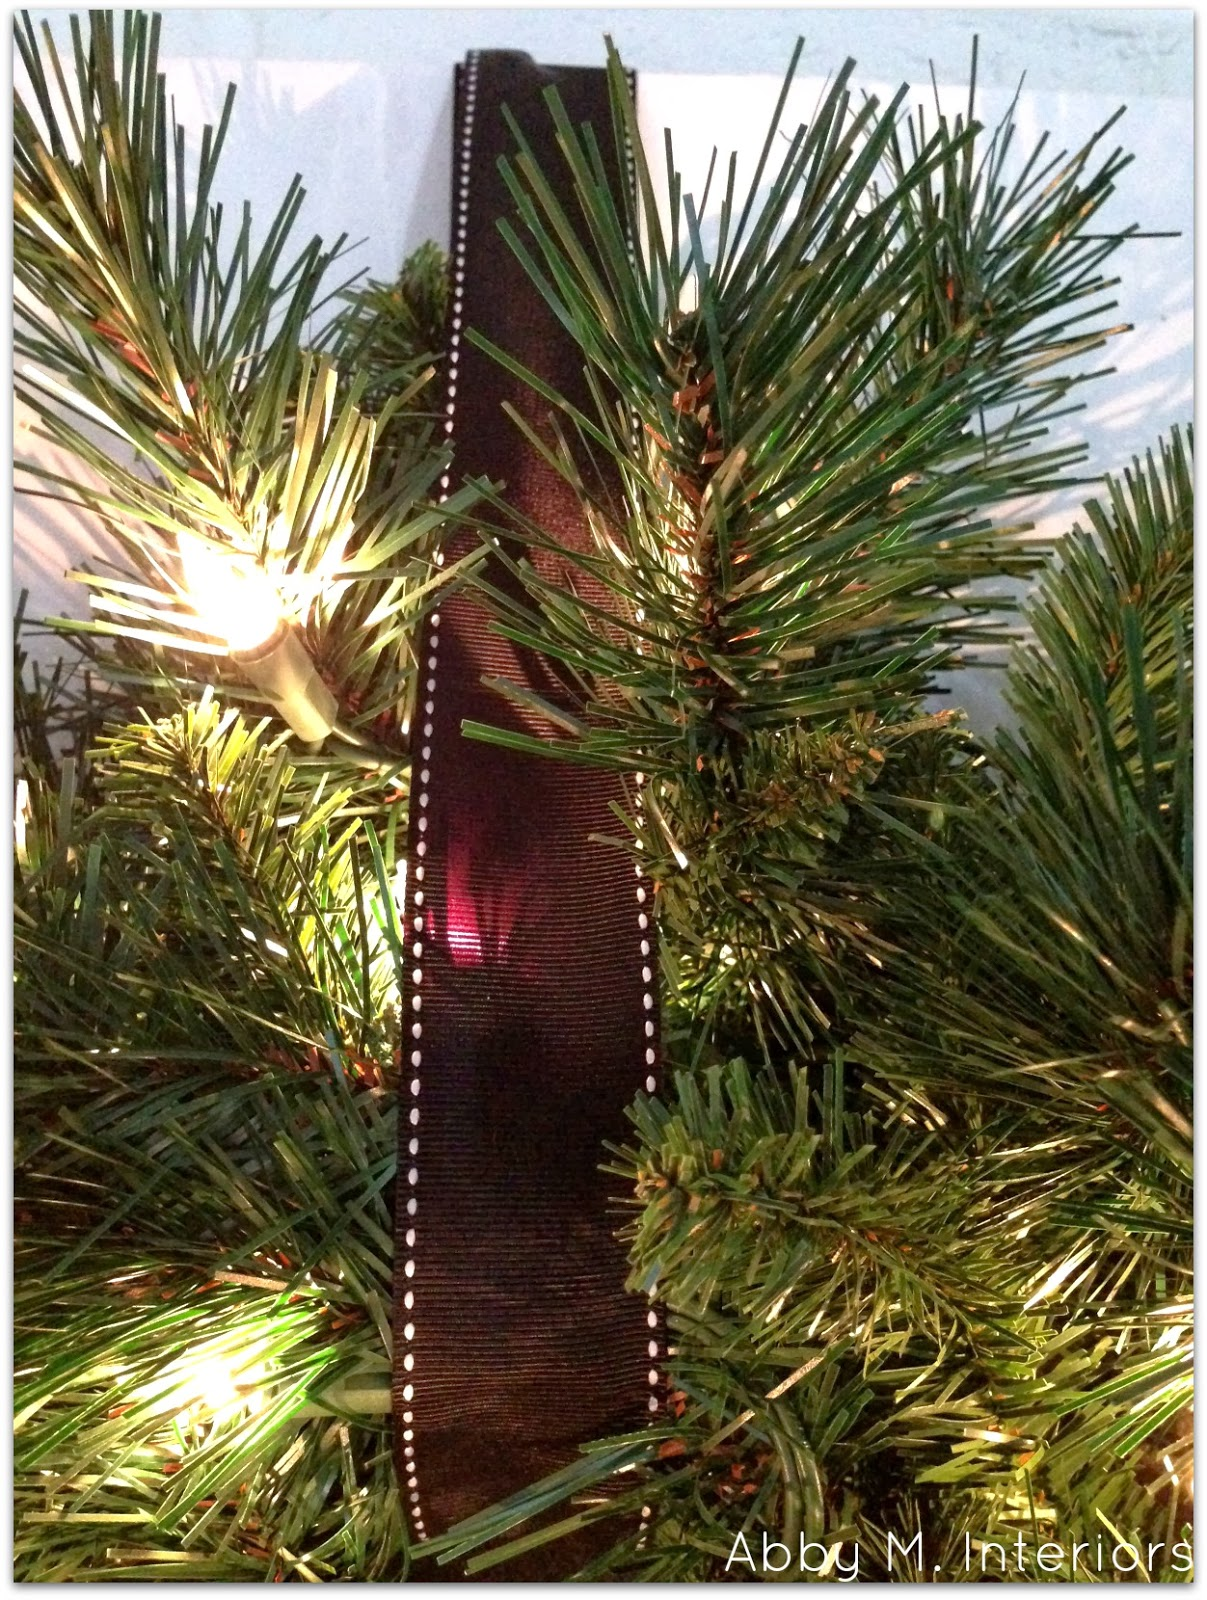 Abby Manchesky Interiors: My Christmas Fireplace: the